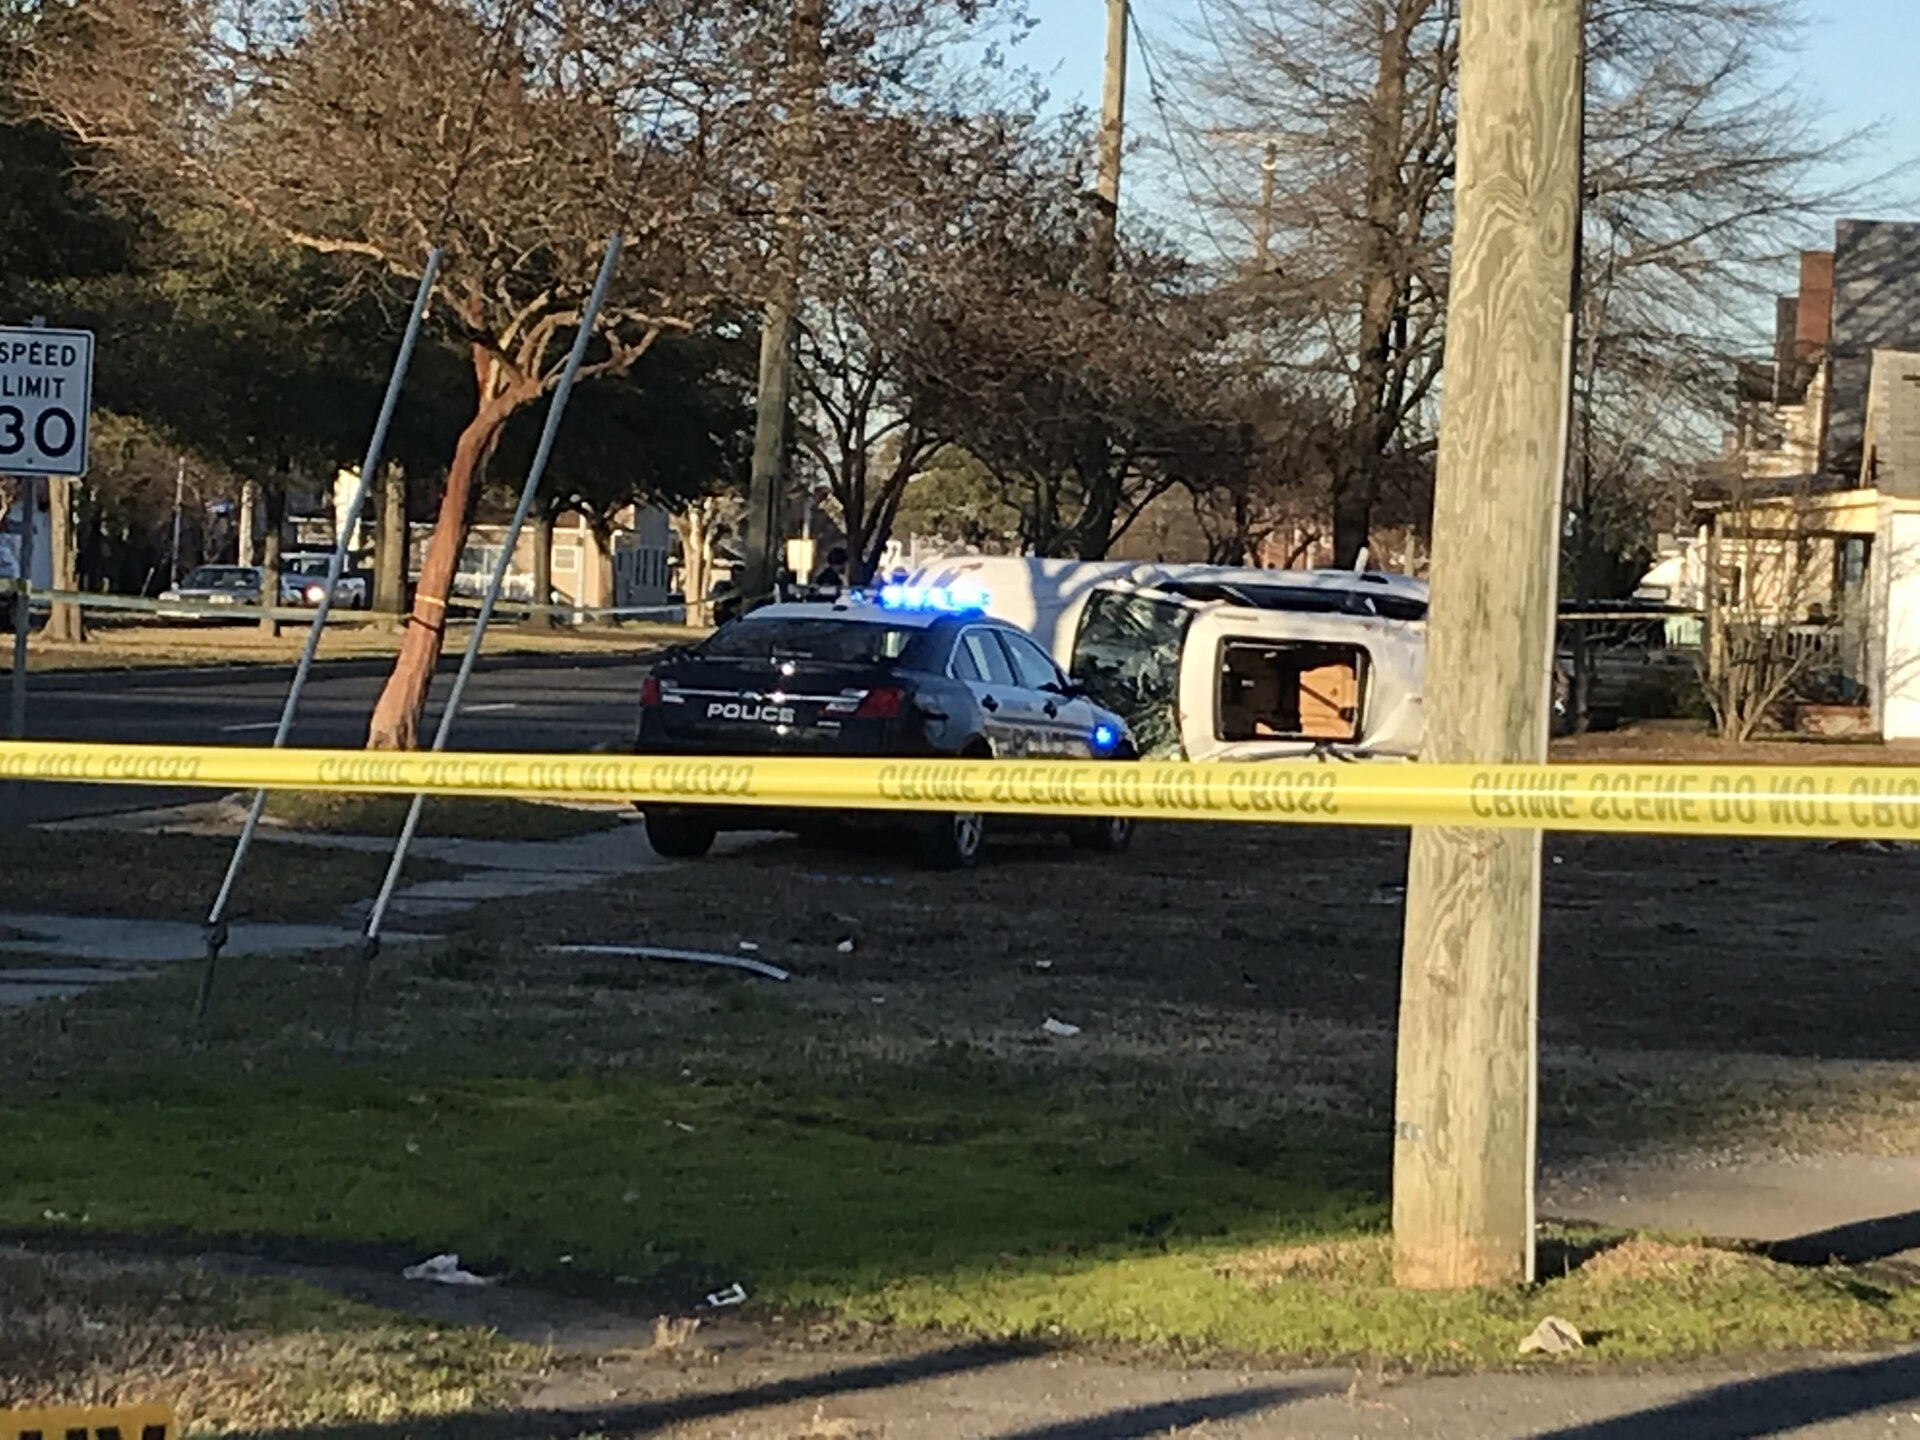 Photos: Teenager dies from injuries sustained during police chase crash inNorfolk